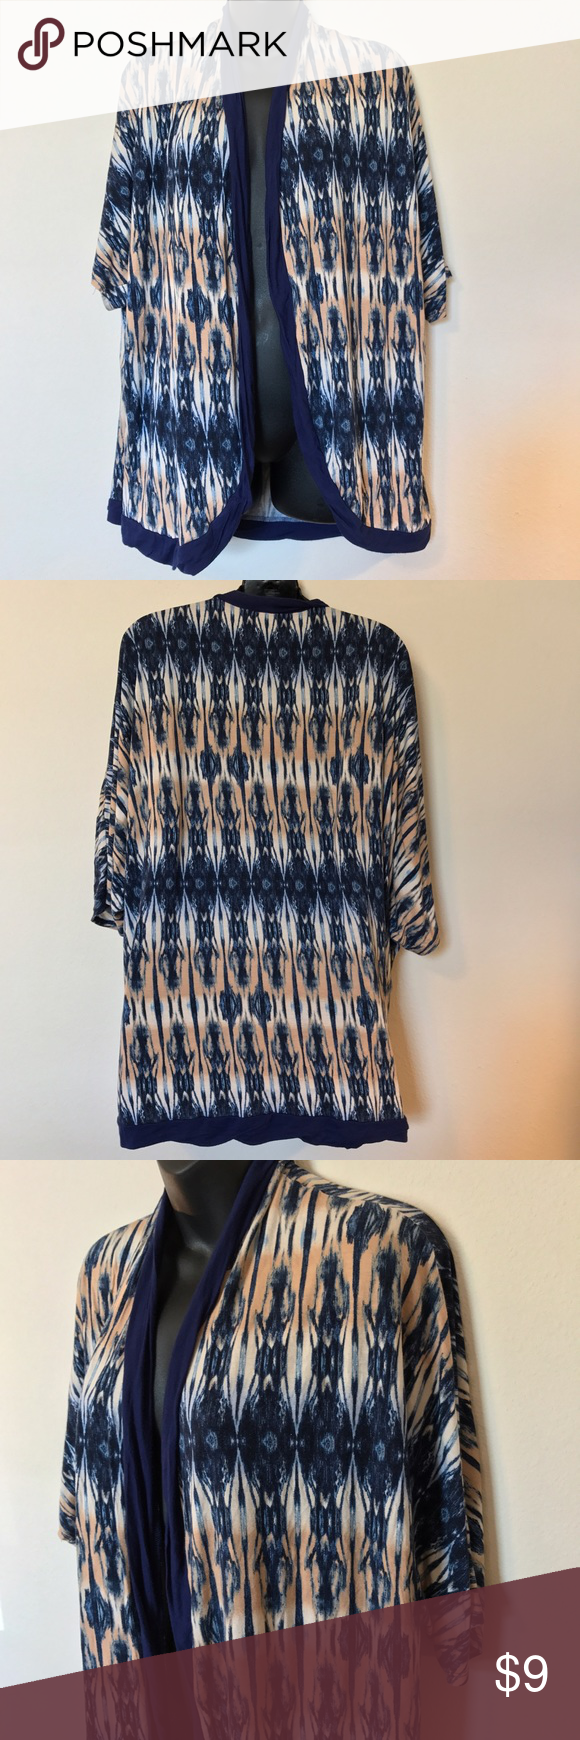 "HEART & SOUL OPEN TOP SHIRT KNIT CARDIGAN BLUE HEART & SOUL WOMEN'S PLUS 3X OPEN TOP SHIRT KNIT CARDIGAN BEIGE BLUE IKAT PRINT MEASUREMENTS LYING FLAT ARMPIT TO ARMPIT 30"" LENGTH 31"" HeartSoul Sweaters Cardigans"